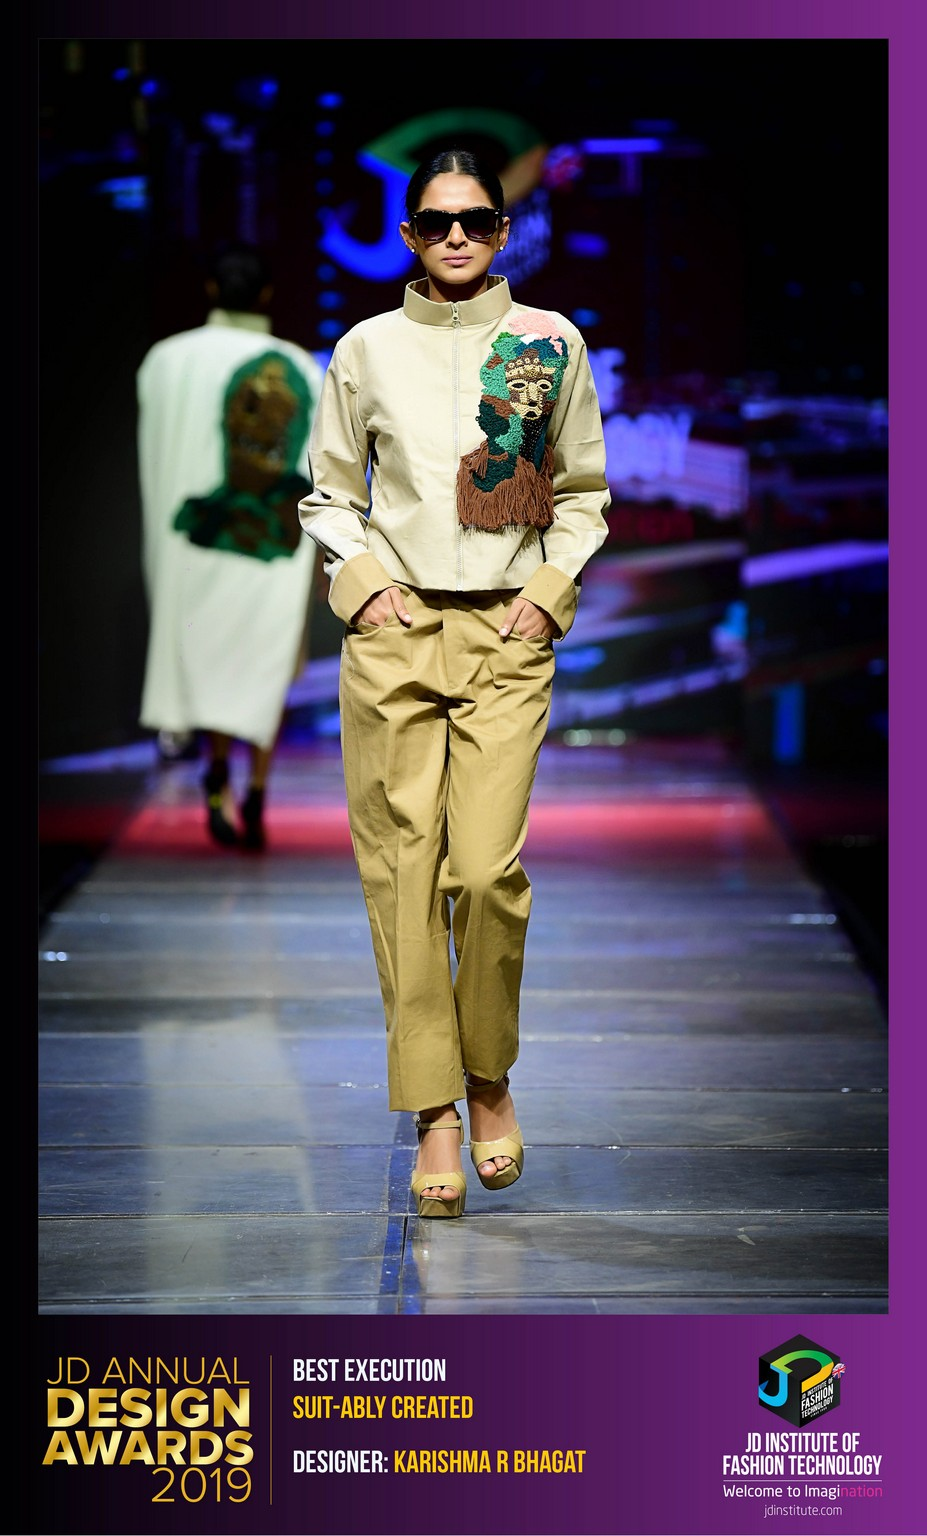 SUIT-ABLY CREATED - CURATOR - JDADA2019 suit-ably created - SUIT ABLY CREATED 3 1 - SUIT-ABLY CREATED – CURATOR – JDADA2019